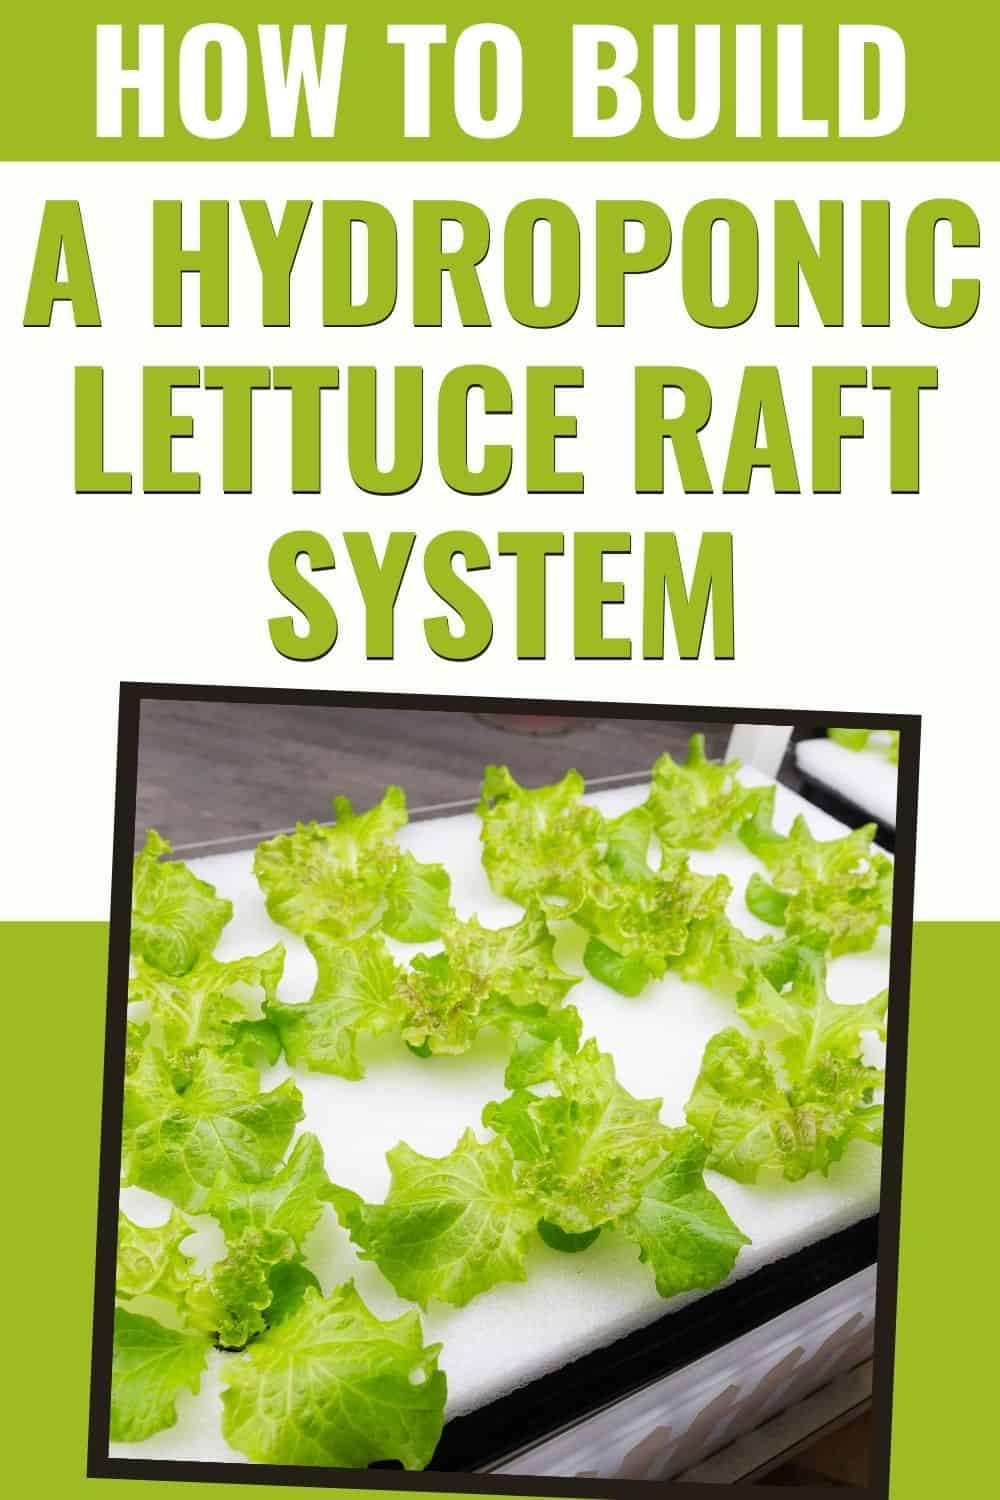 How to build a hydroponic lettuce raft system